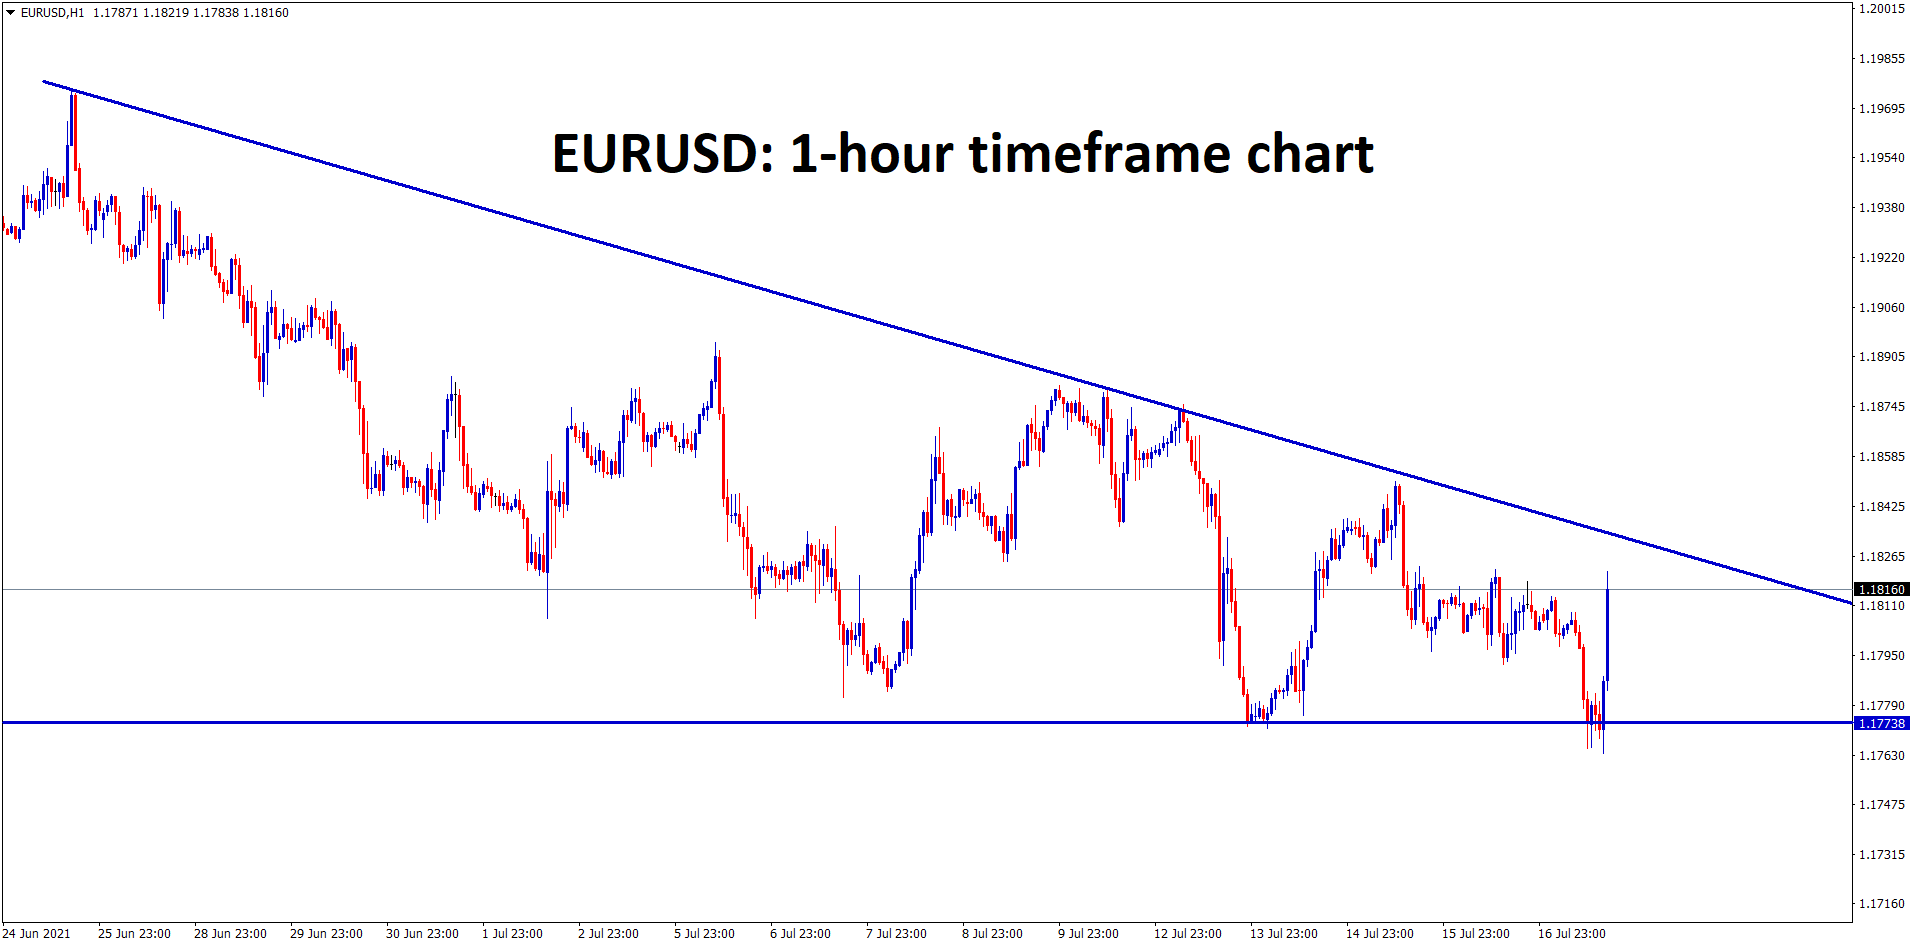 EURUSD has formed a descending Triangle pattern wait for the breakout from this triangle